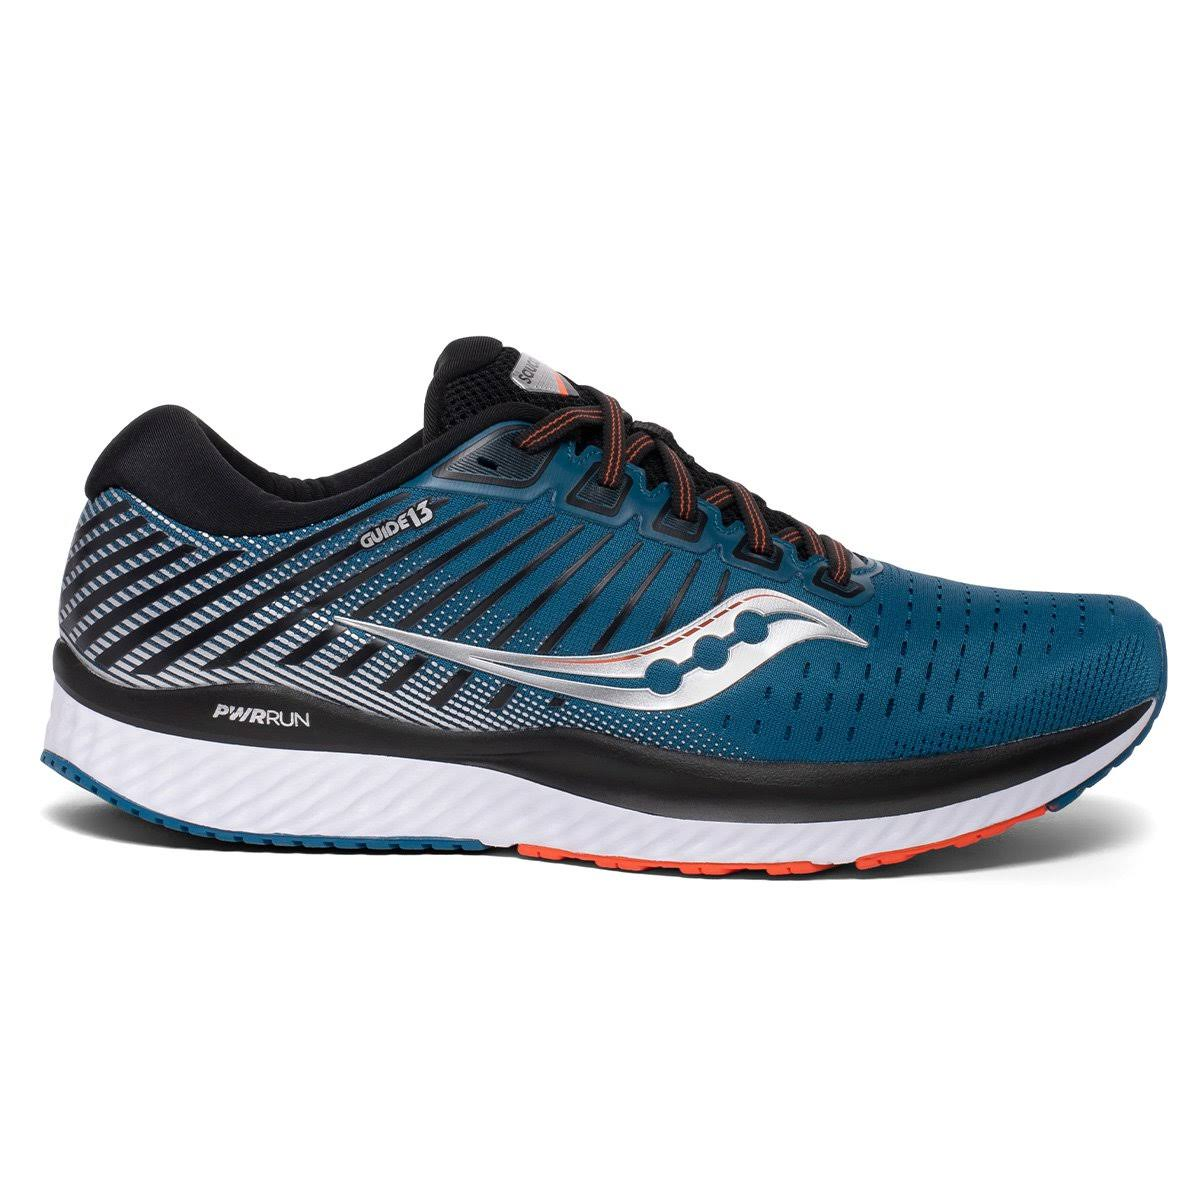 Saucony Guide 13 Running Shoes - Blue - 7